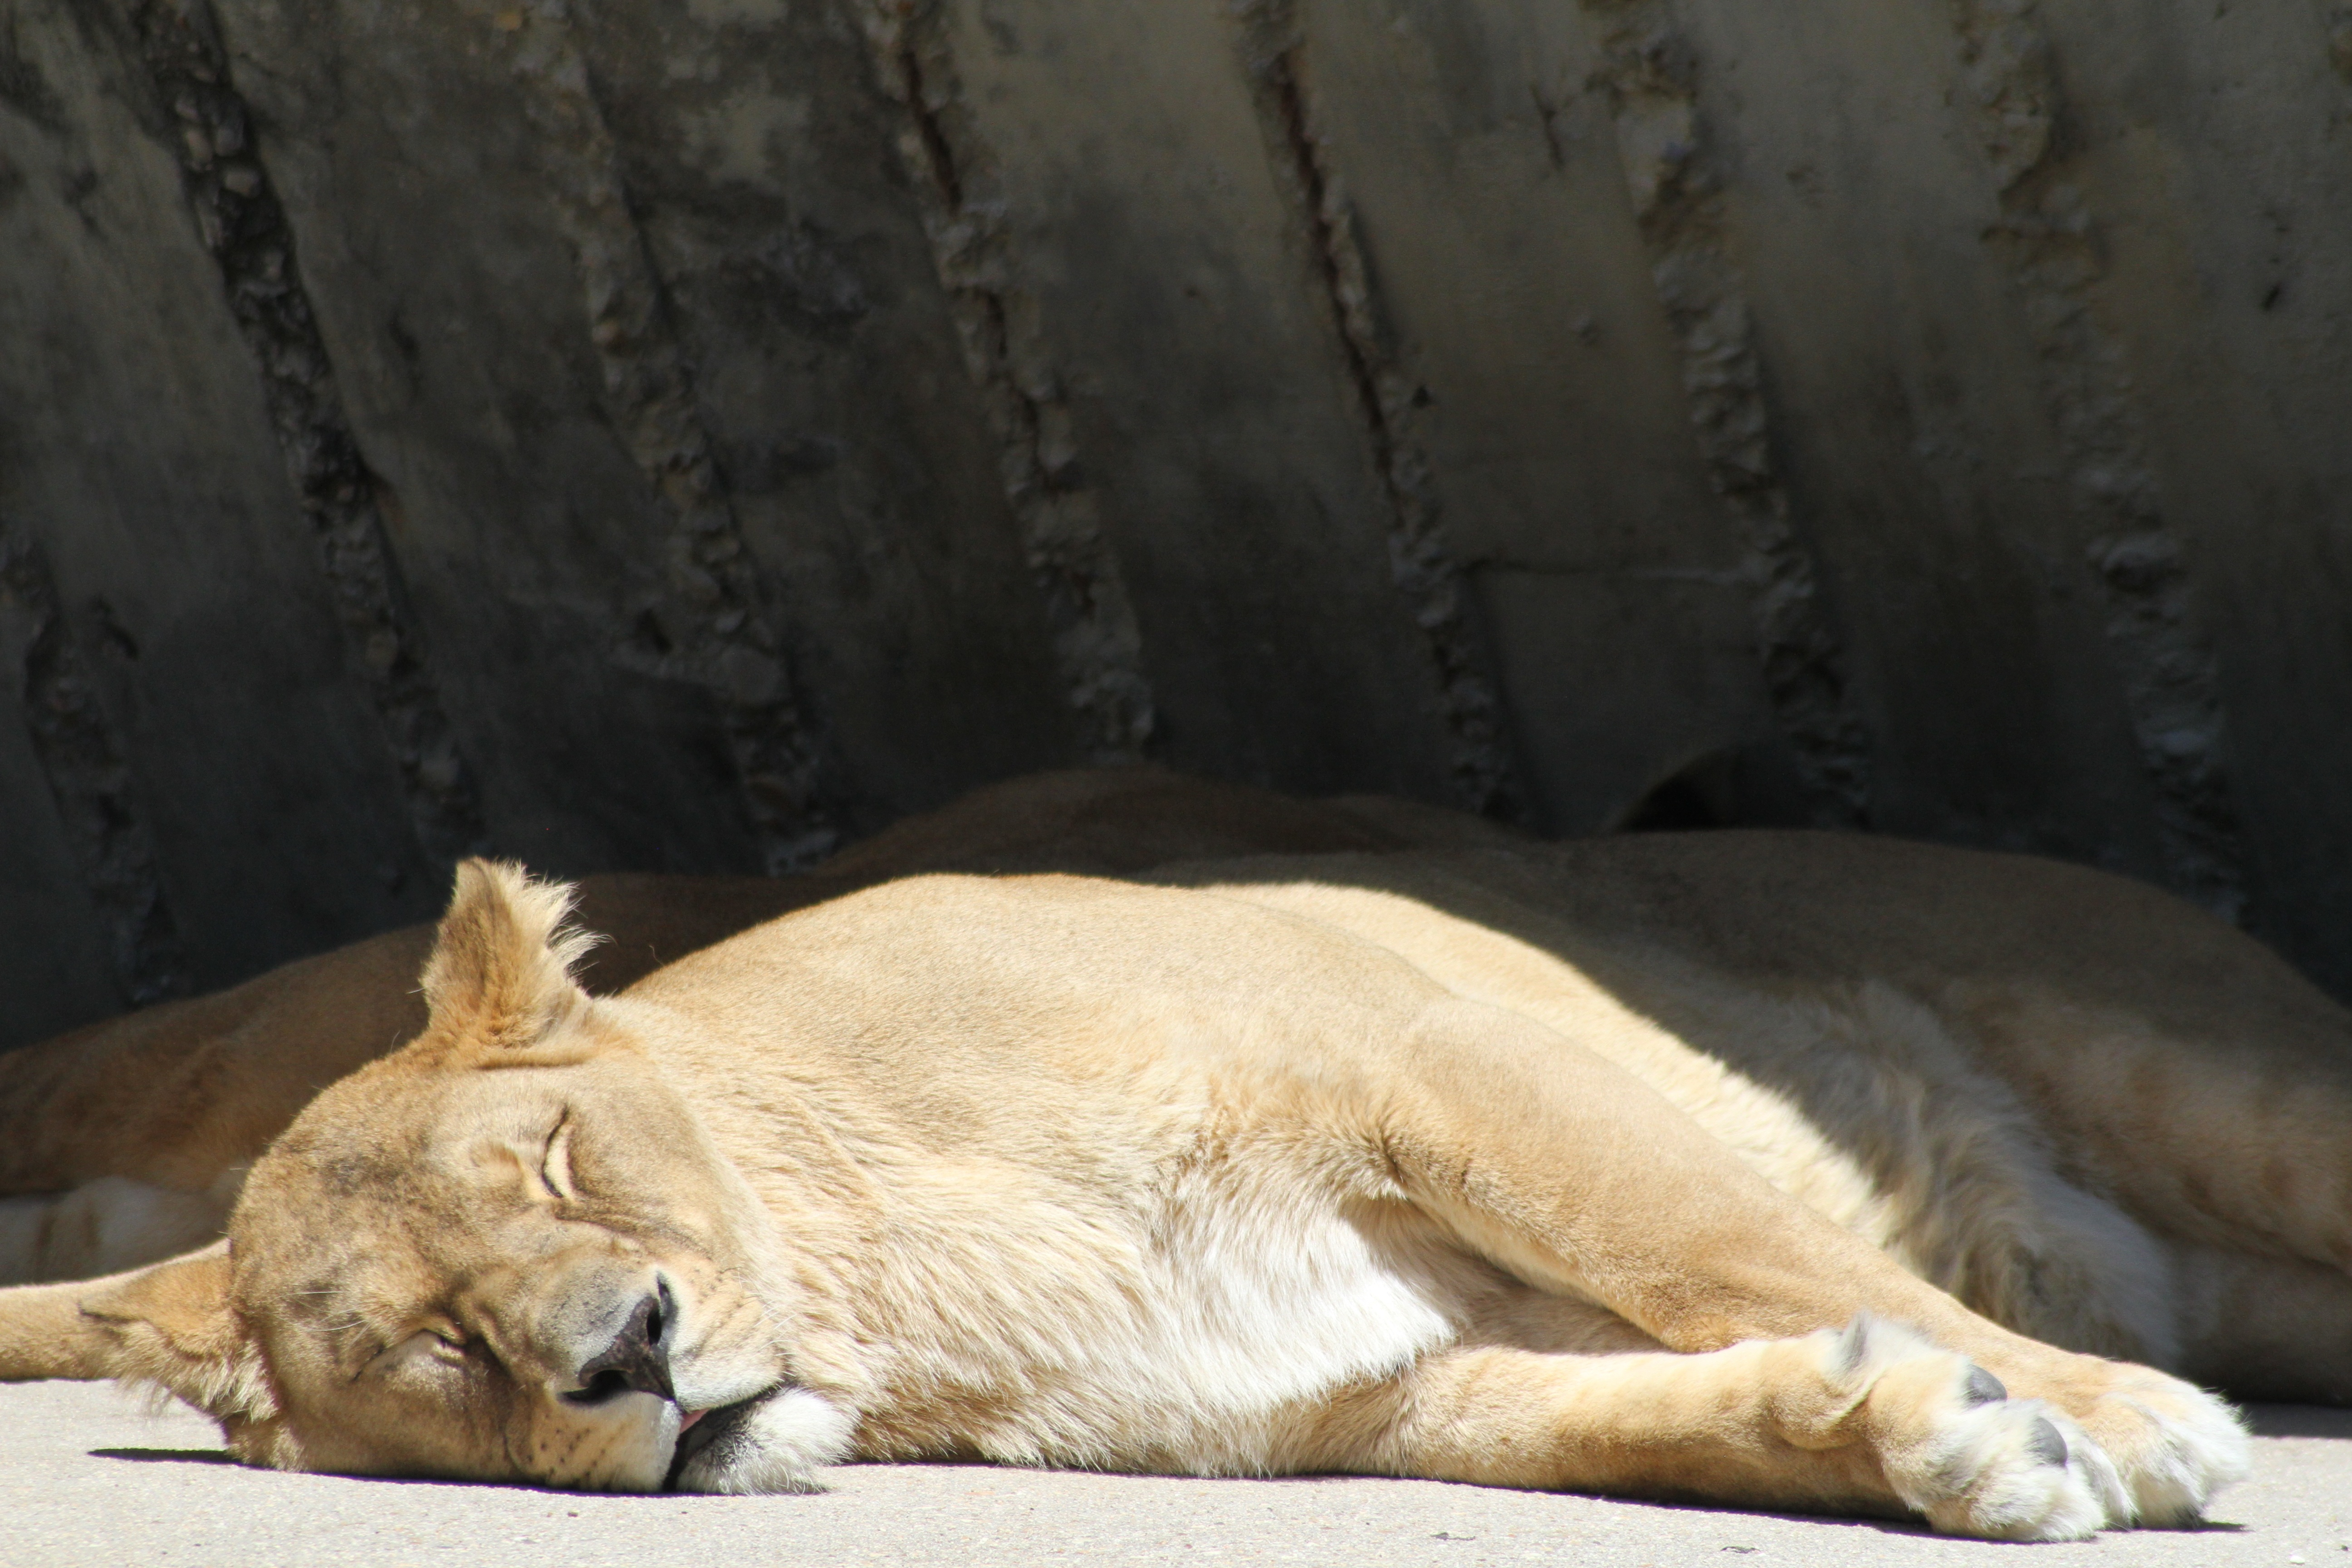 88865 download wallpaper Animals, Lion, Lioness, Predator, Sleep, Dream screensavers and pictures for free